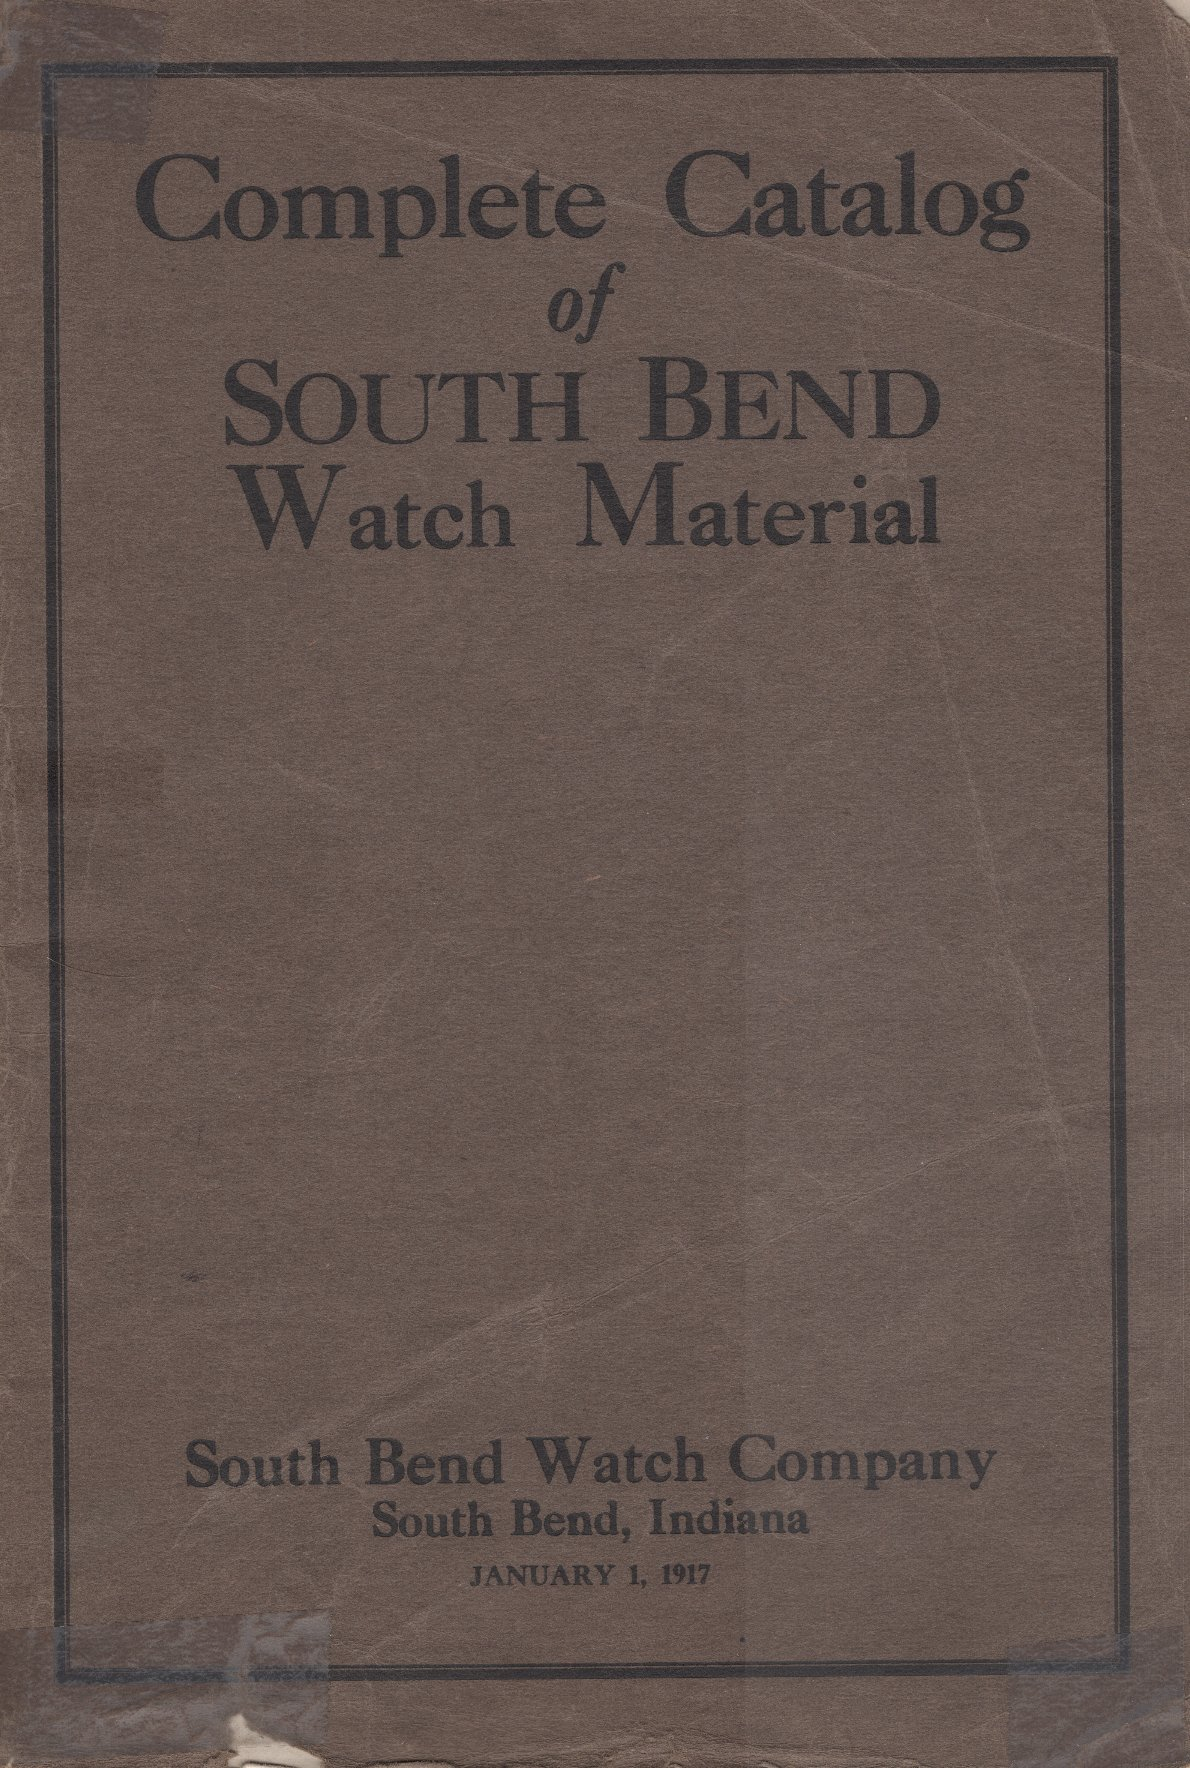 South Bend Watch Material Catalog (1917) Cover Image